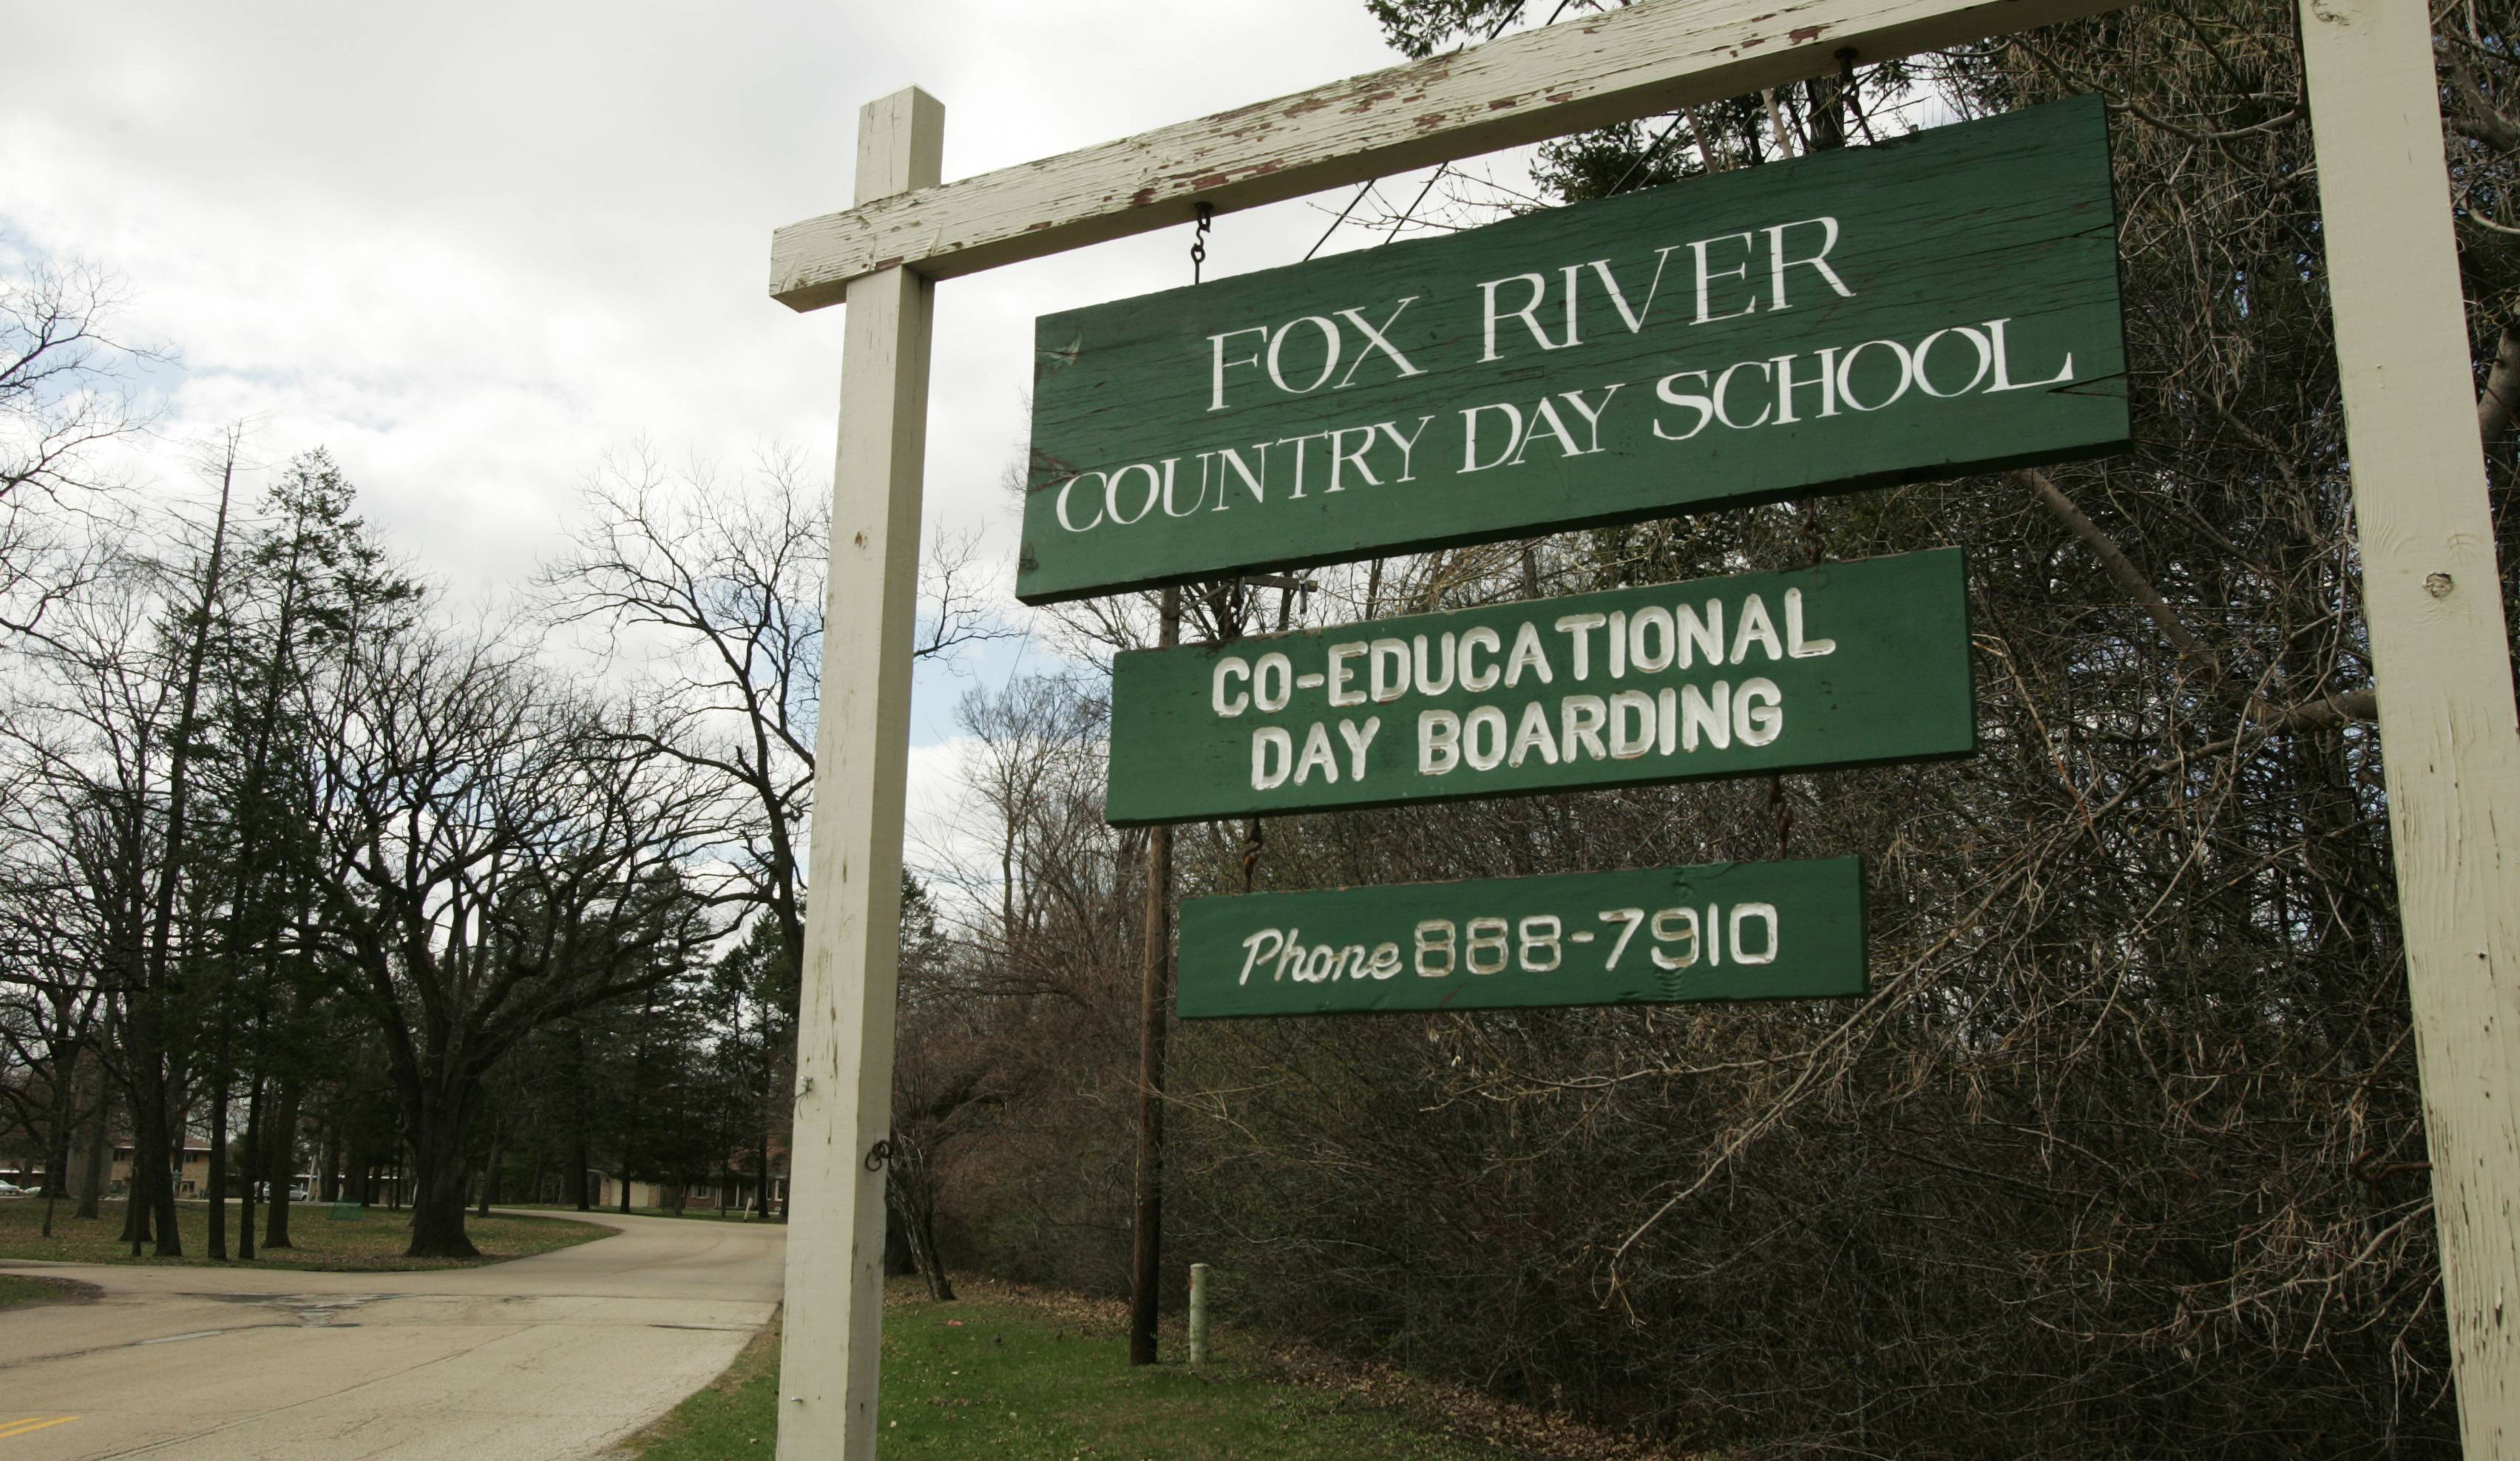 The Fox River Country Day School grounds are on Dundee Avenue in Elgin.